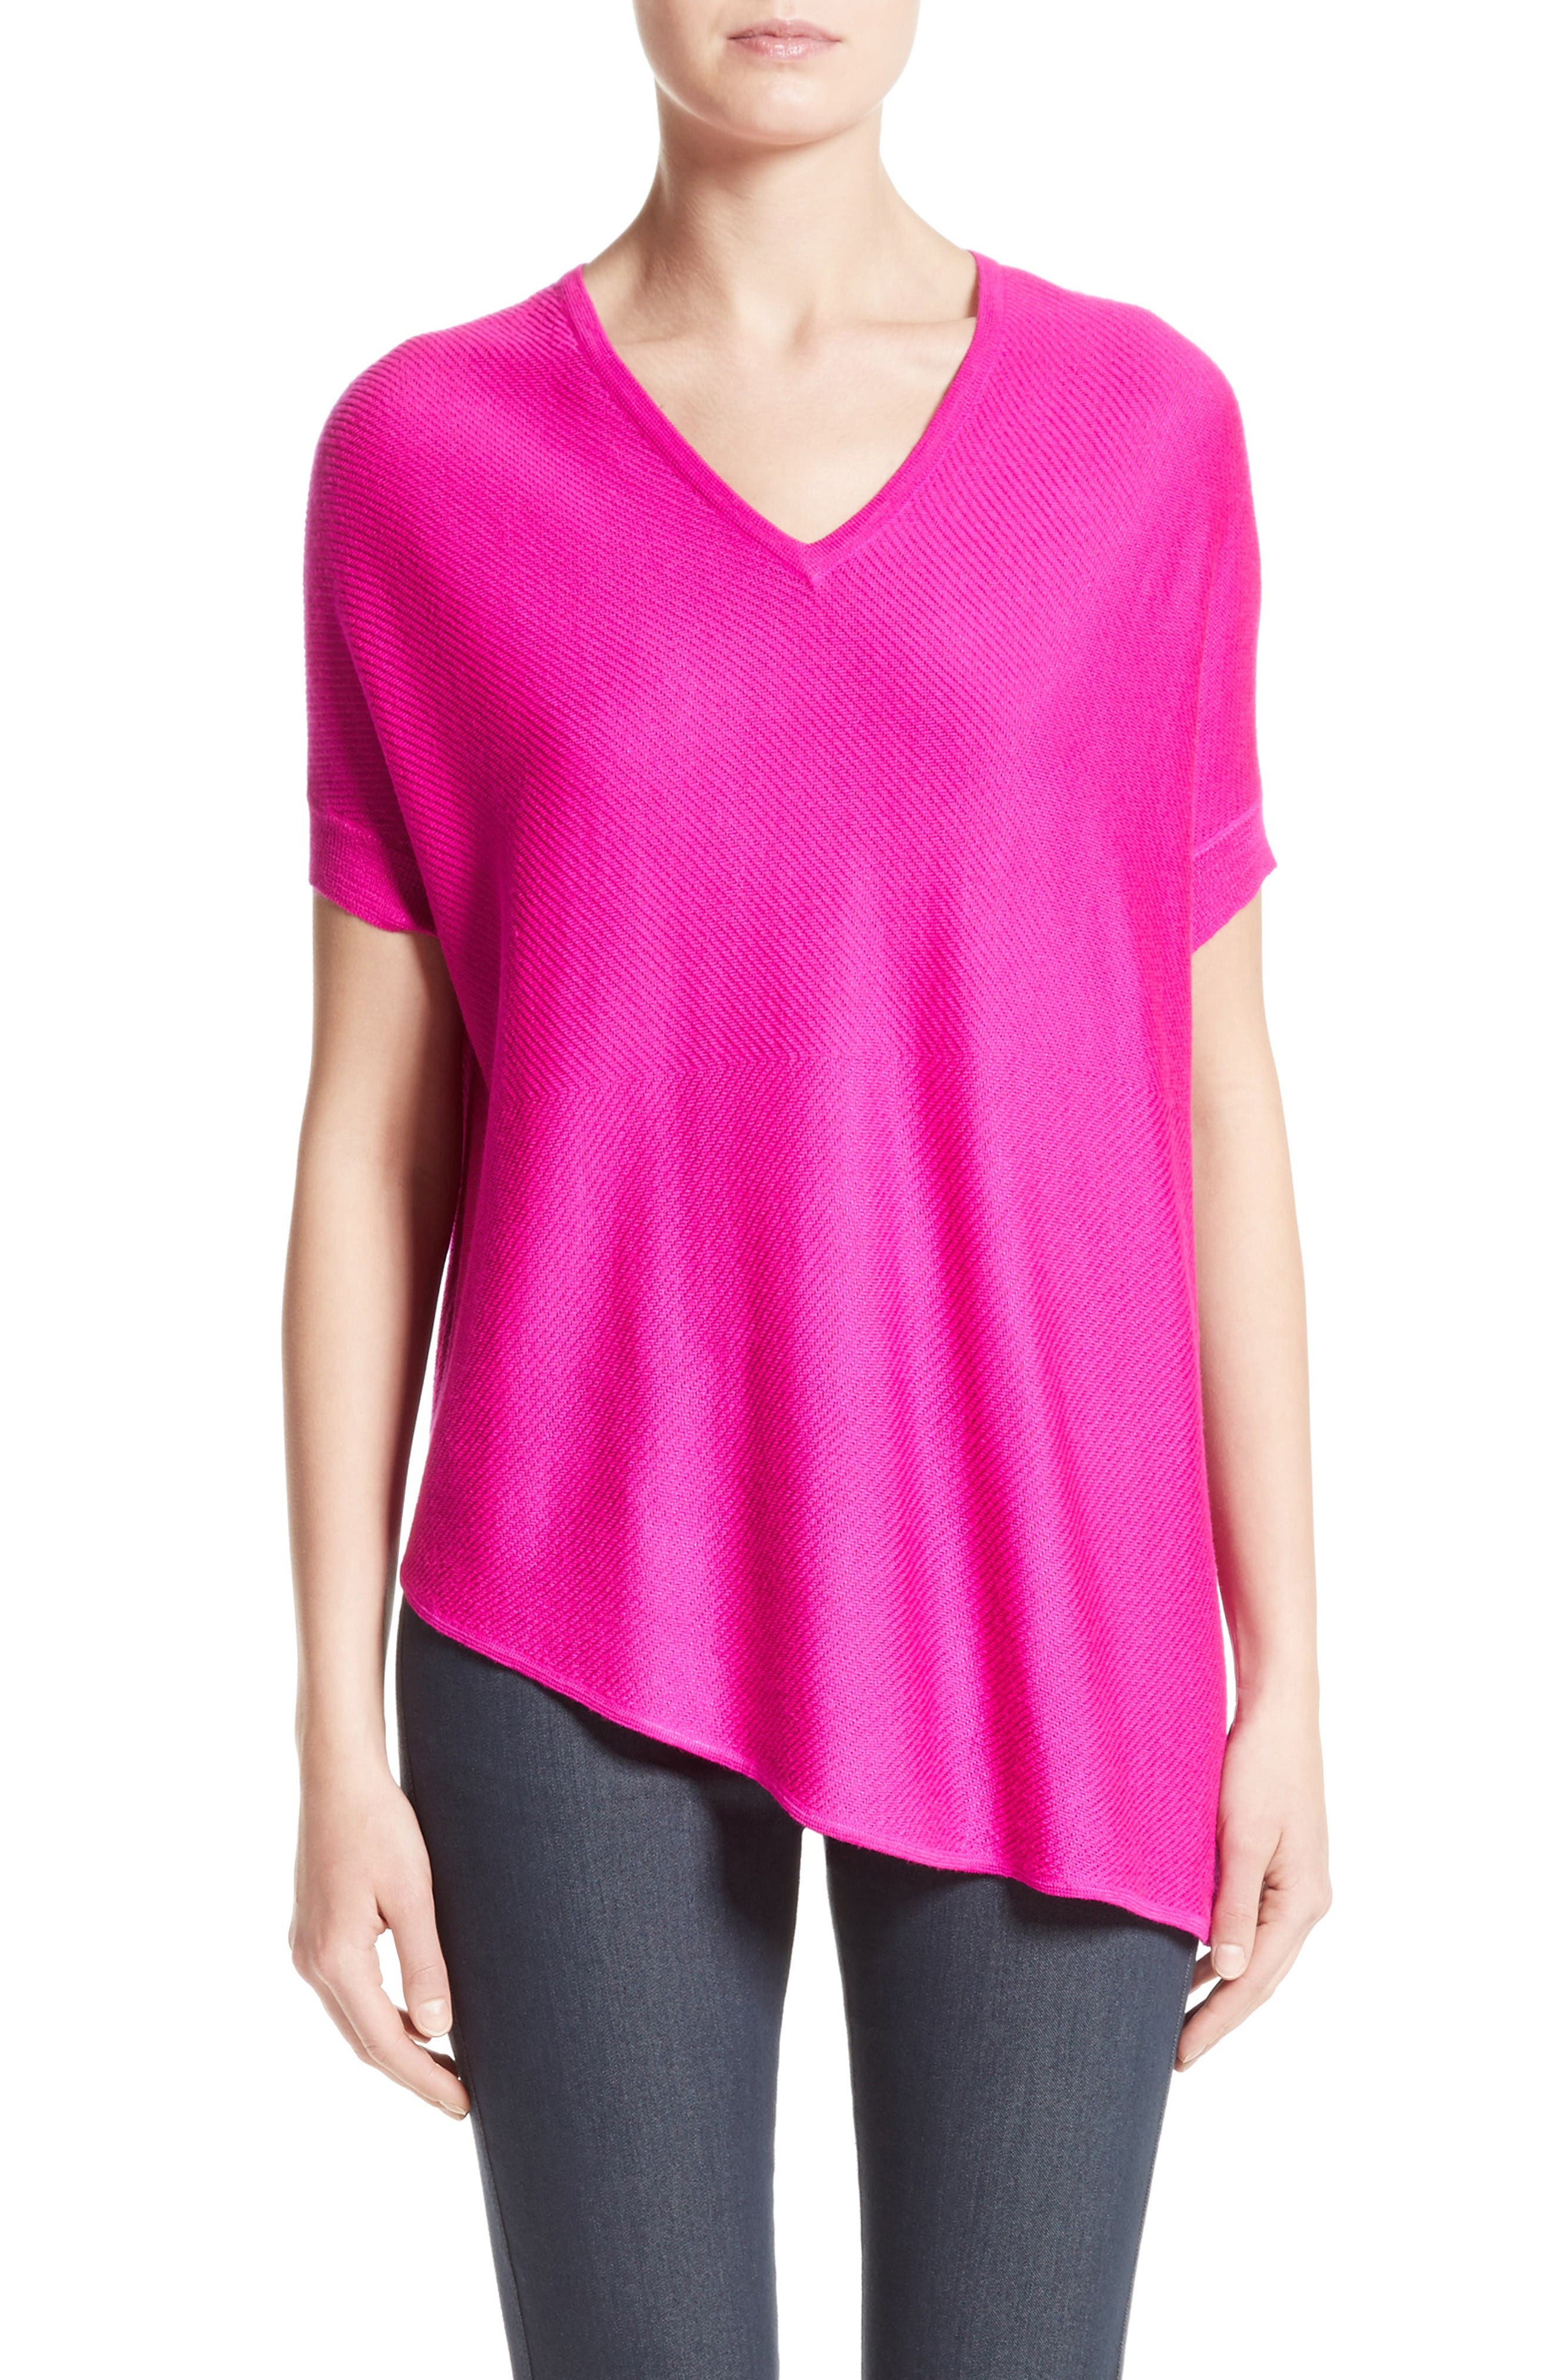 Alternate Image 1 Selected - St. John Collection Matte Shine Weave Knit Tunic